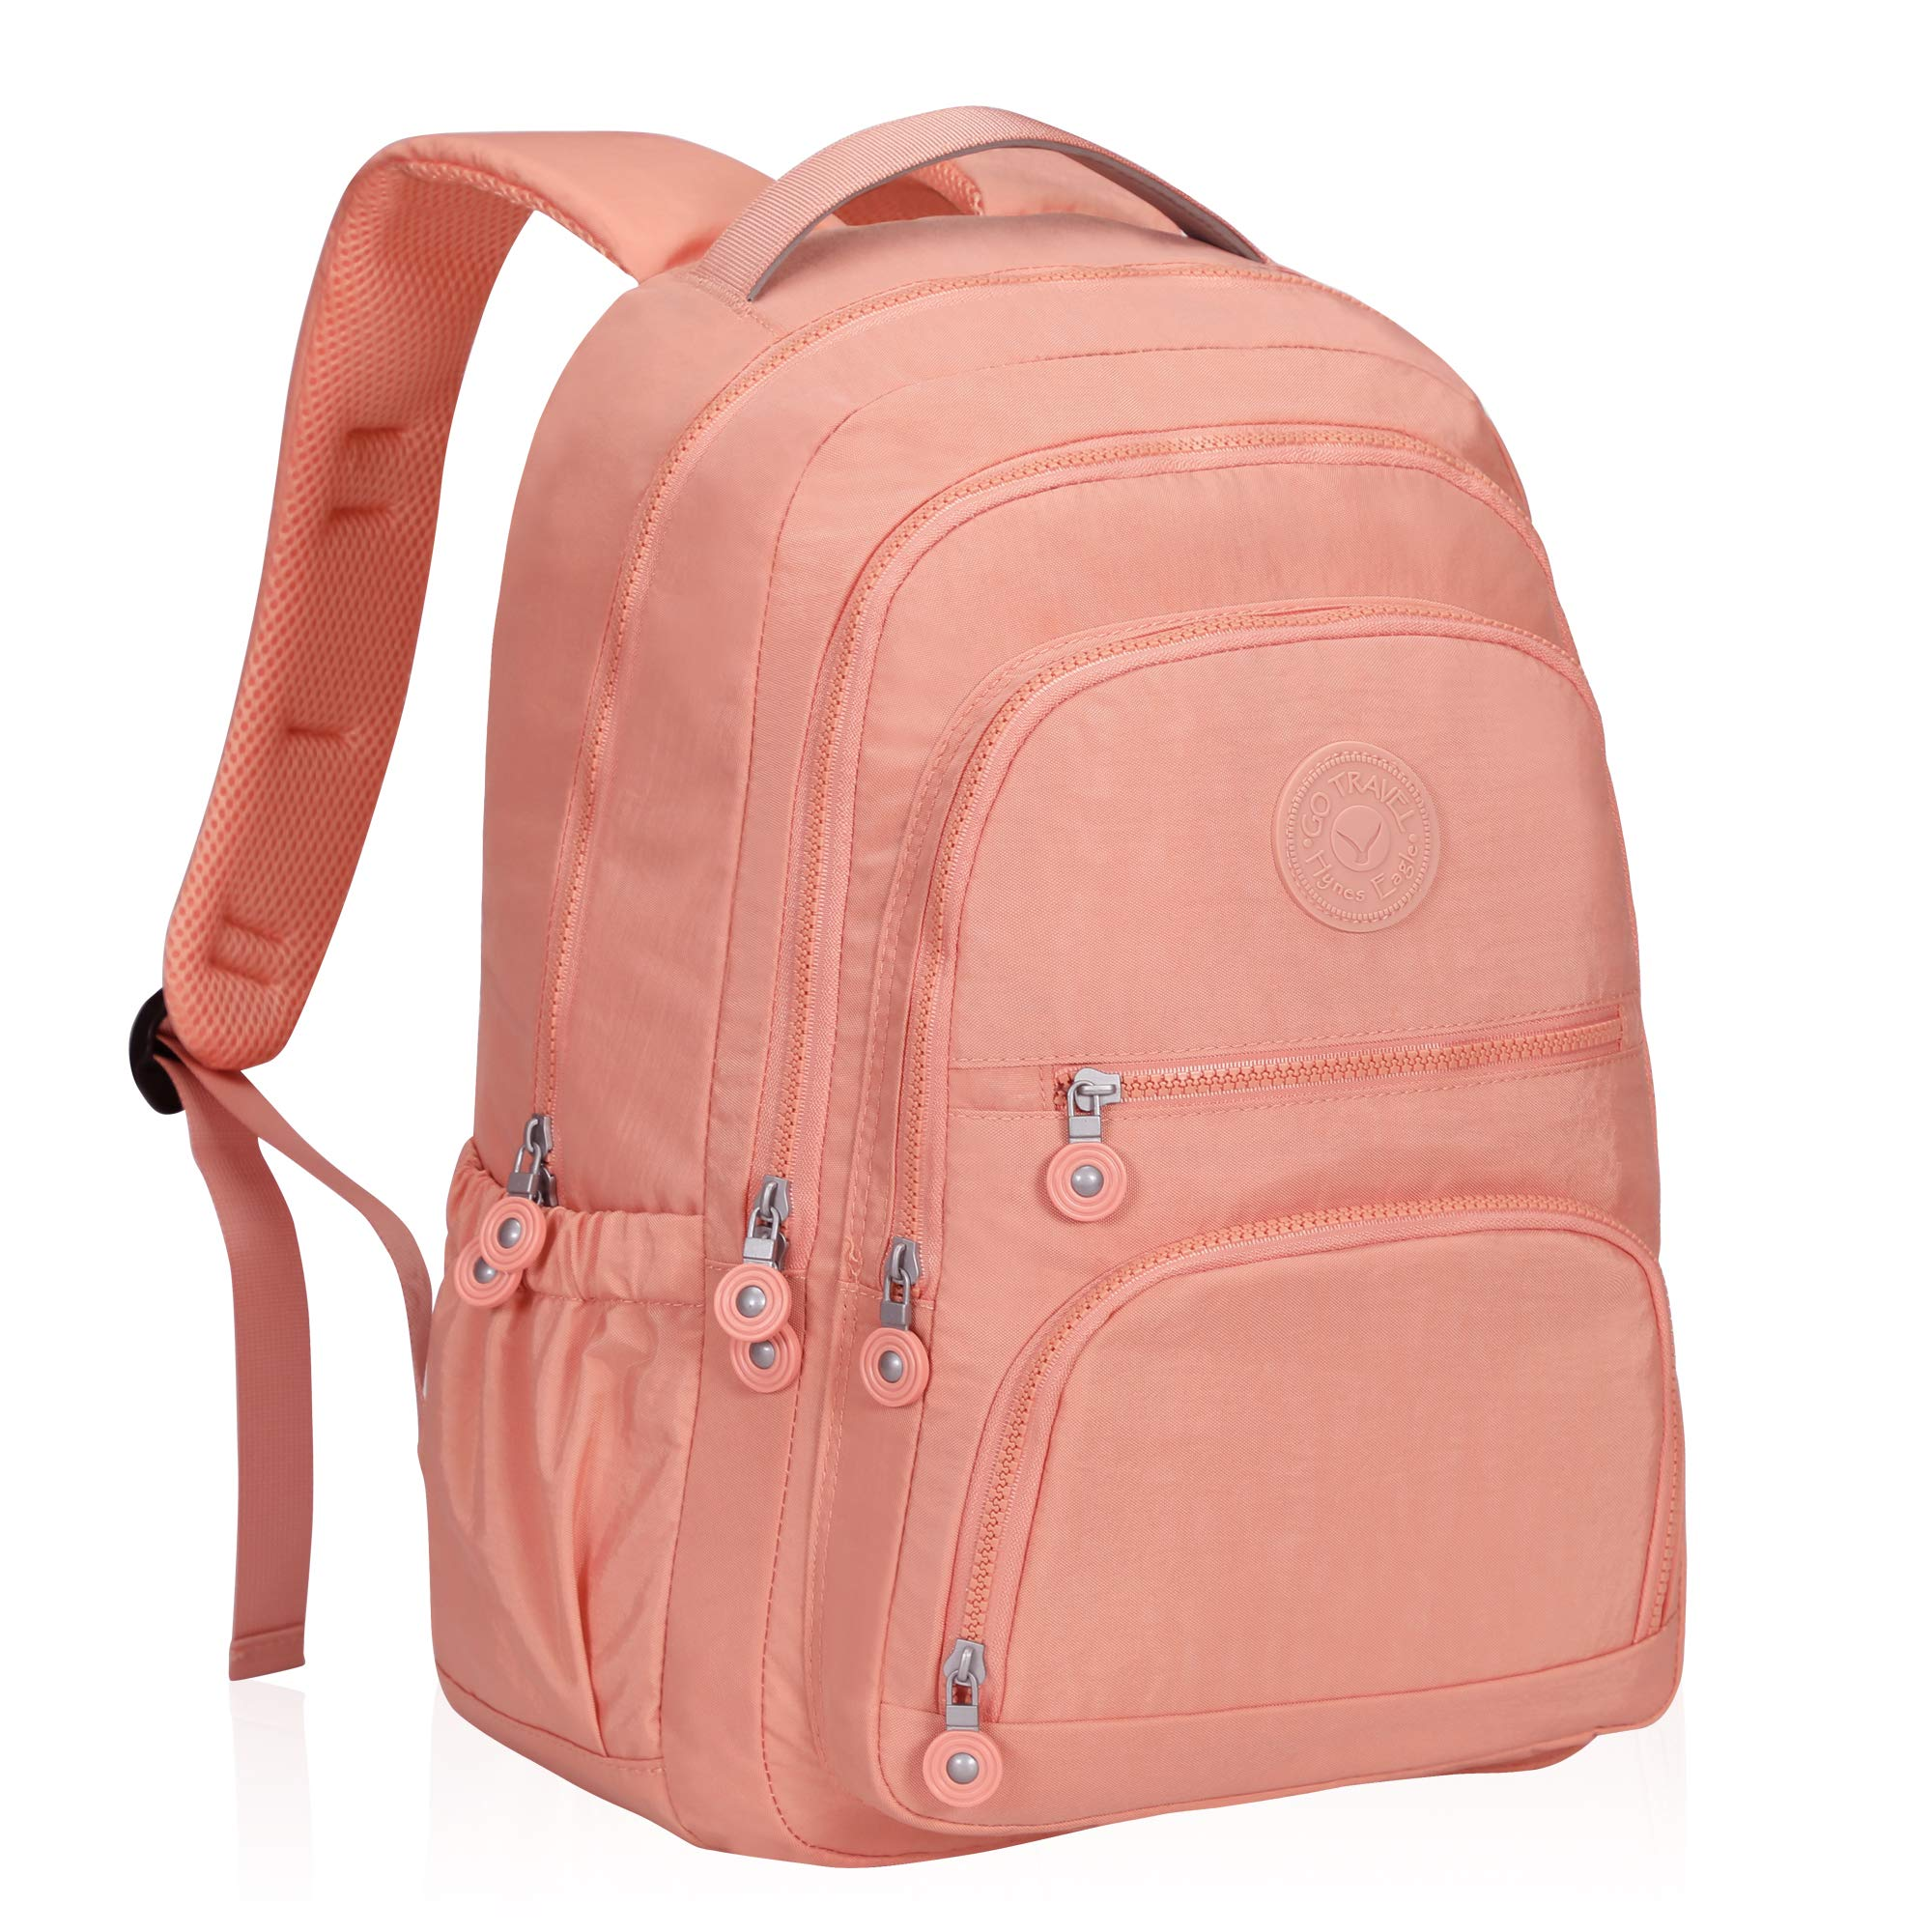 Hynes Eagle School Backpack Student Casual Daypack Laptop Backpack Fits 15.6 inches Rose Pink by Hynes Eagle